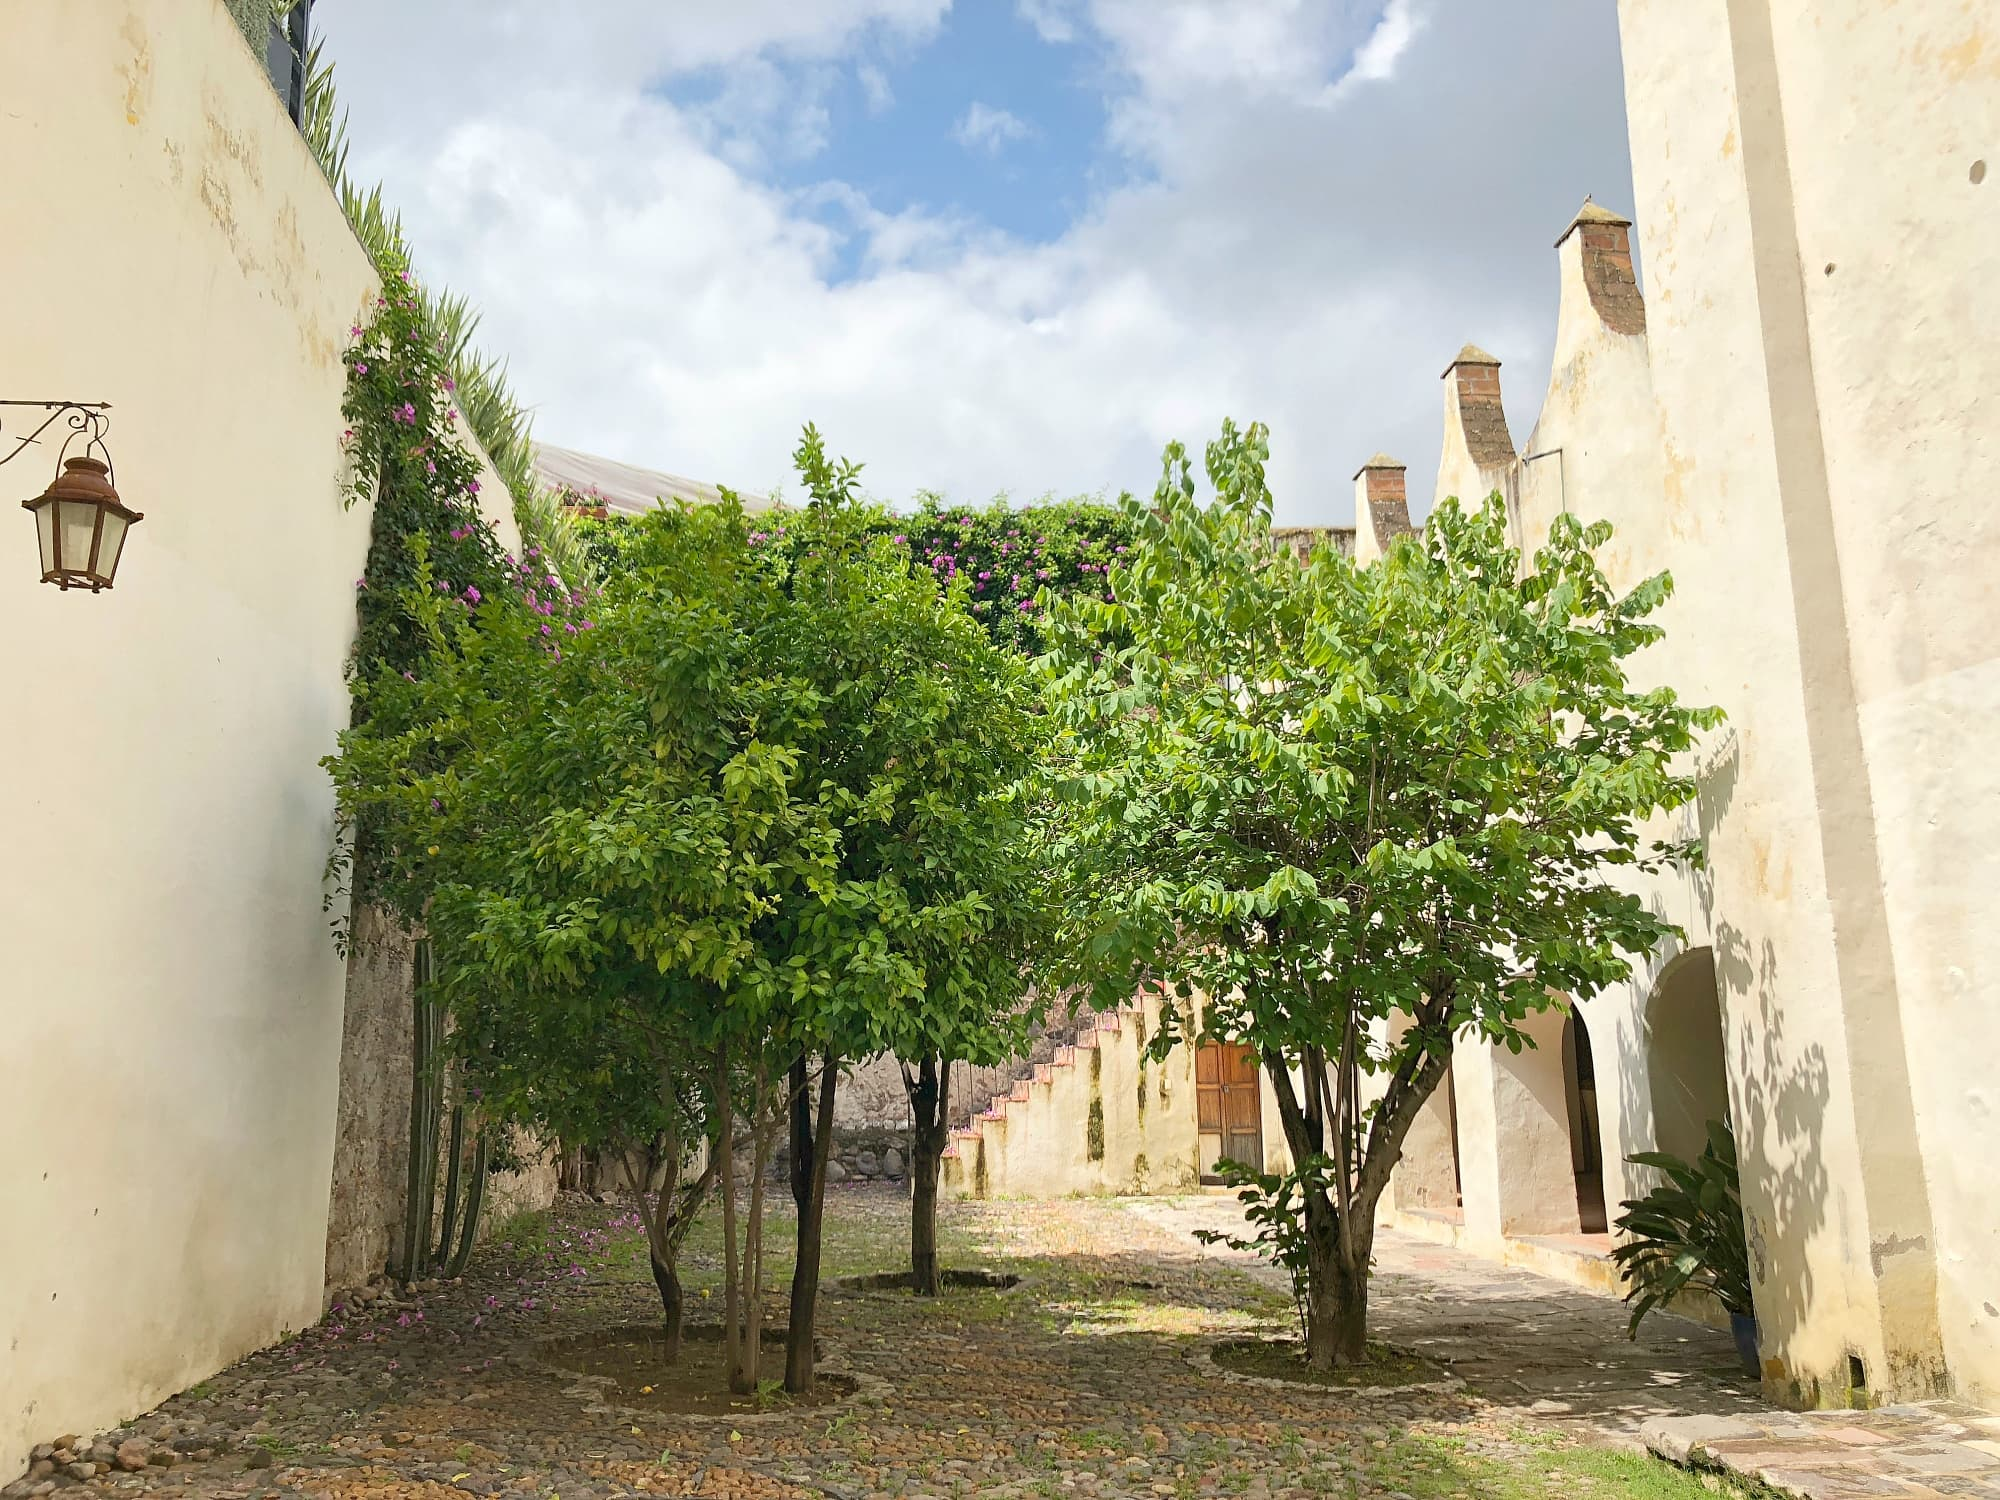 A courtyard at Museo de San Miguel de Allende, former residence of one of the city's namesakes, Ignacio Allende